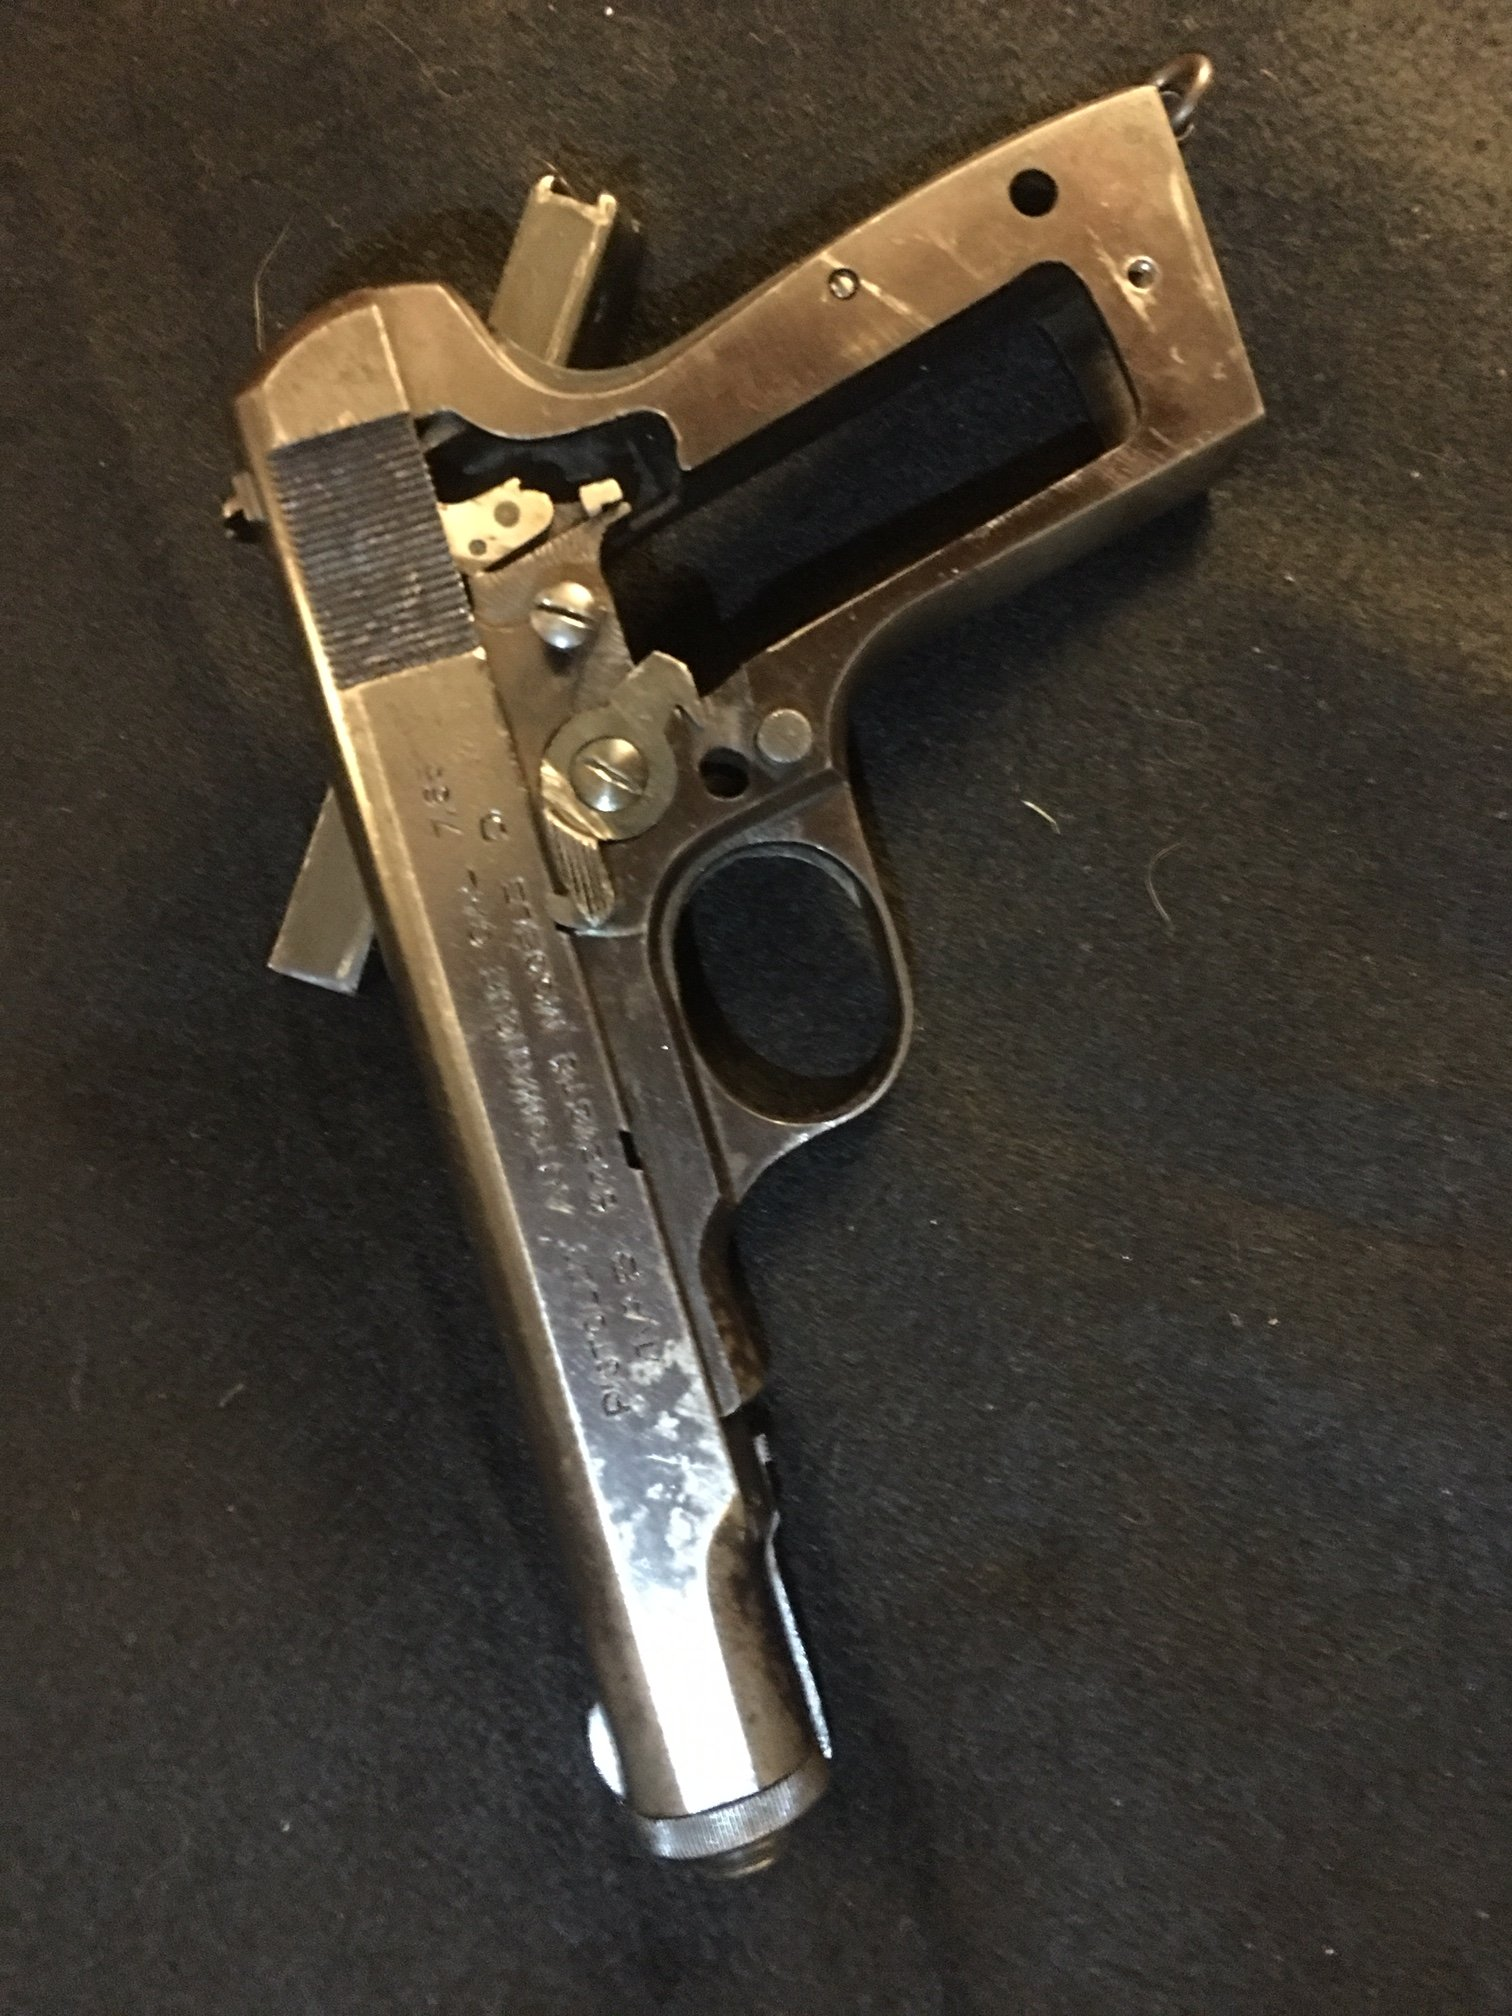 MAB Model D  32 pistol - incomplete | The Firearms Forum